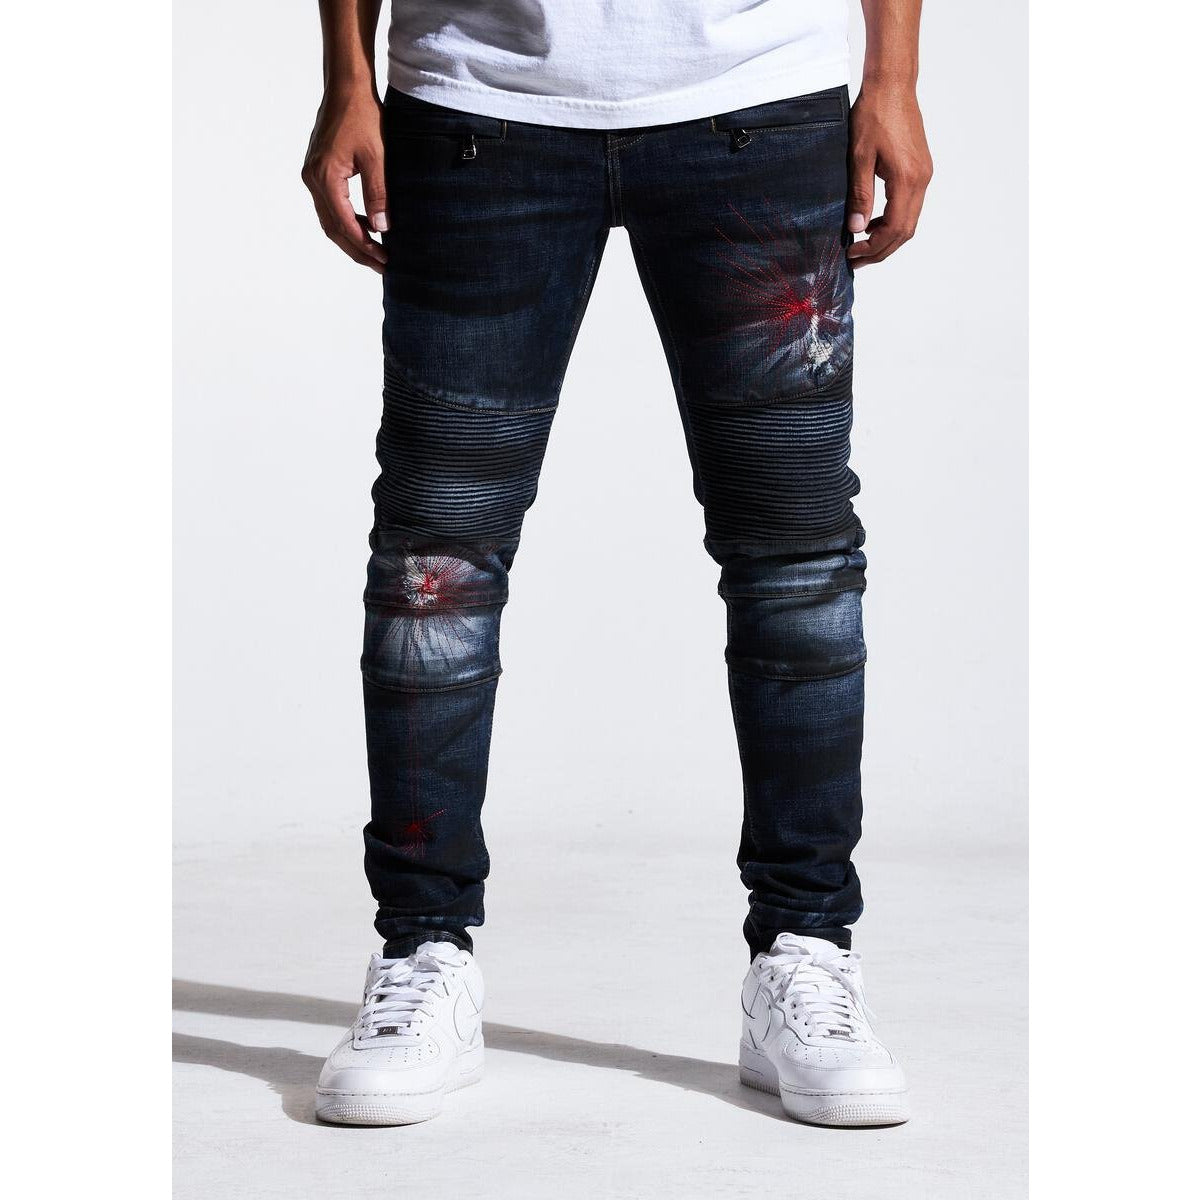 Crysp Denim Twilight Skywalker Denim Biker Jeans (CRYSPSP121-118)